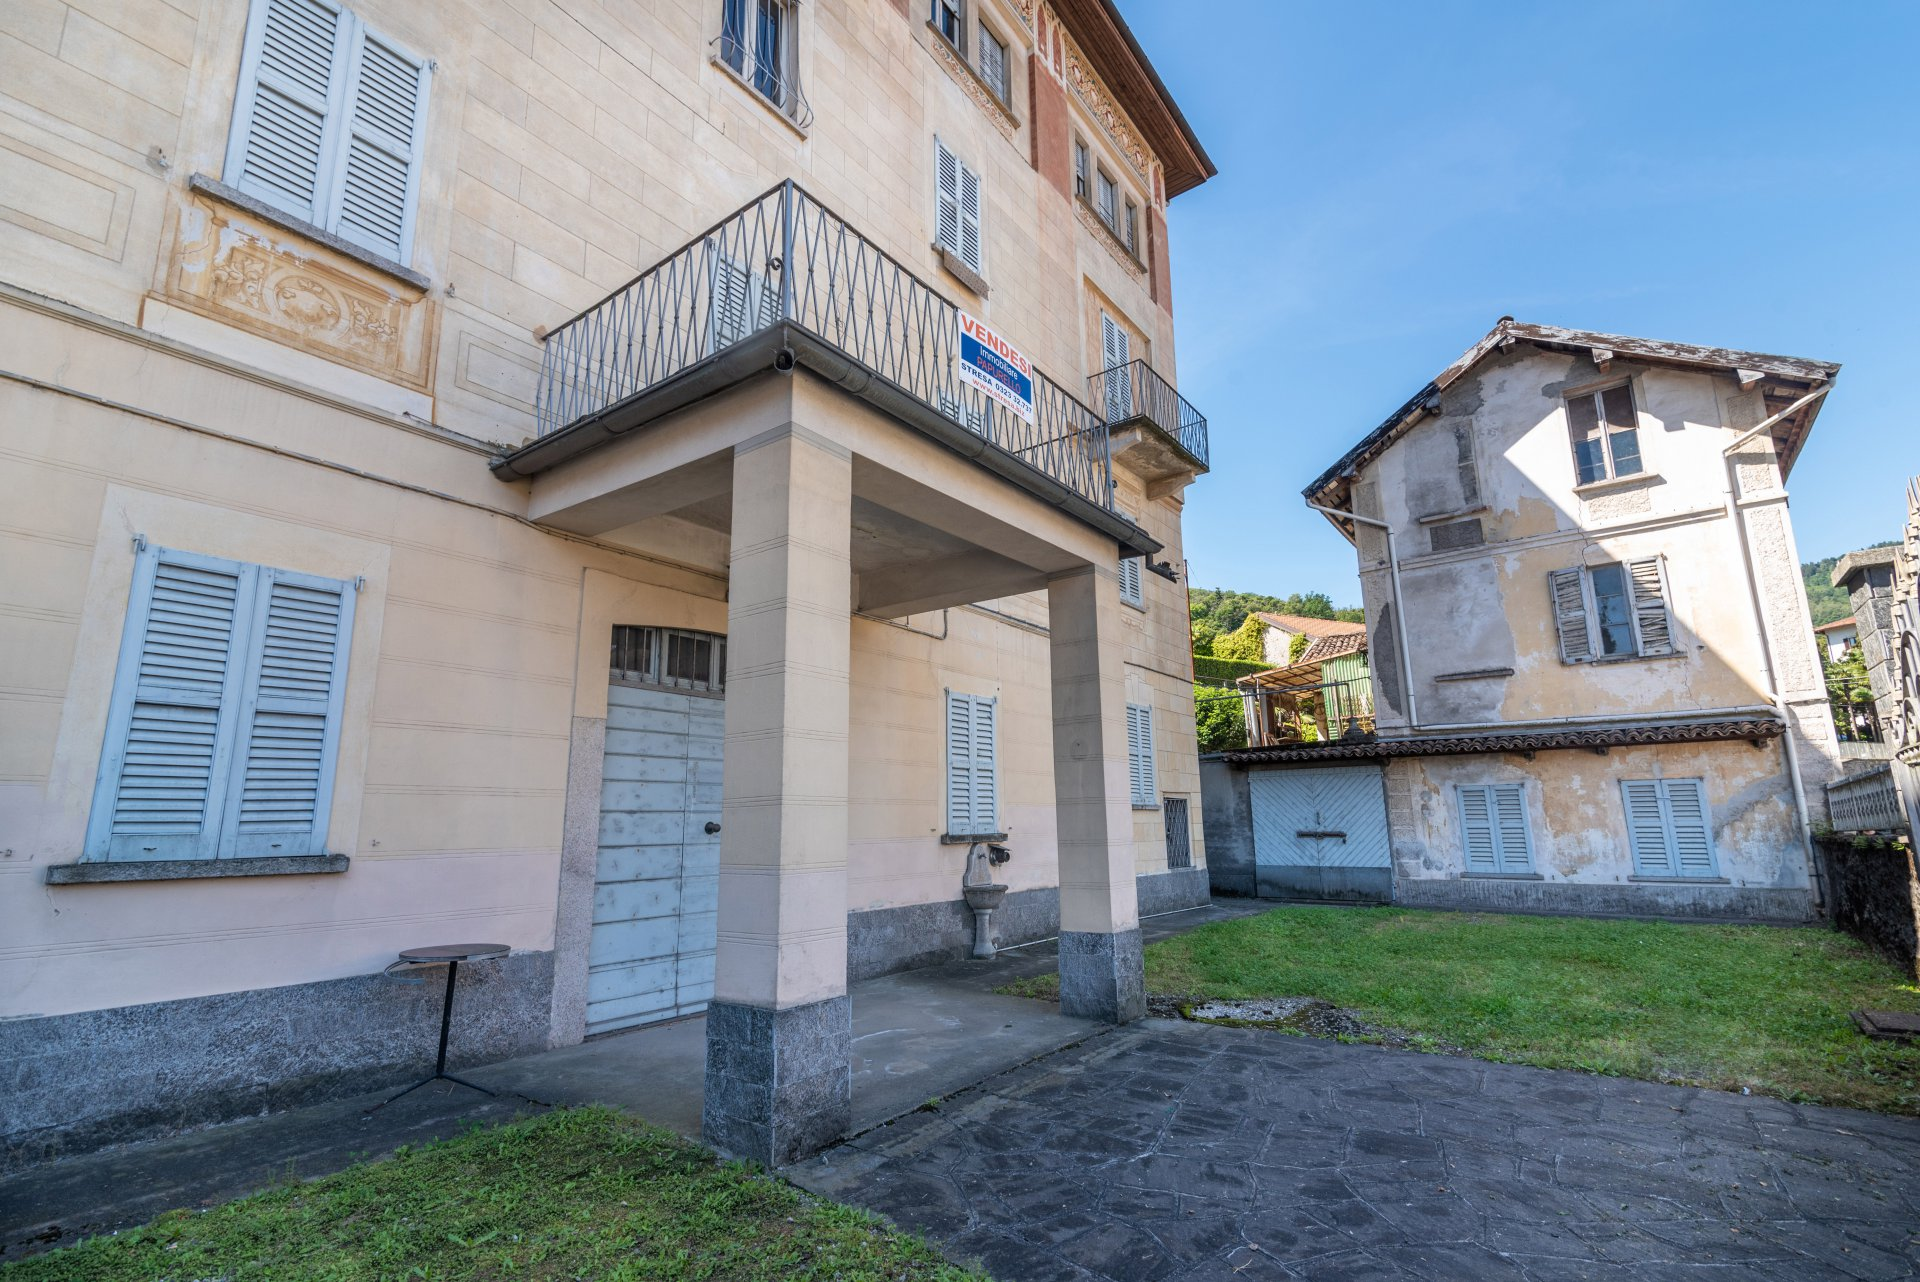 Property for sale in the centre of Stresa- inner entrance